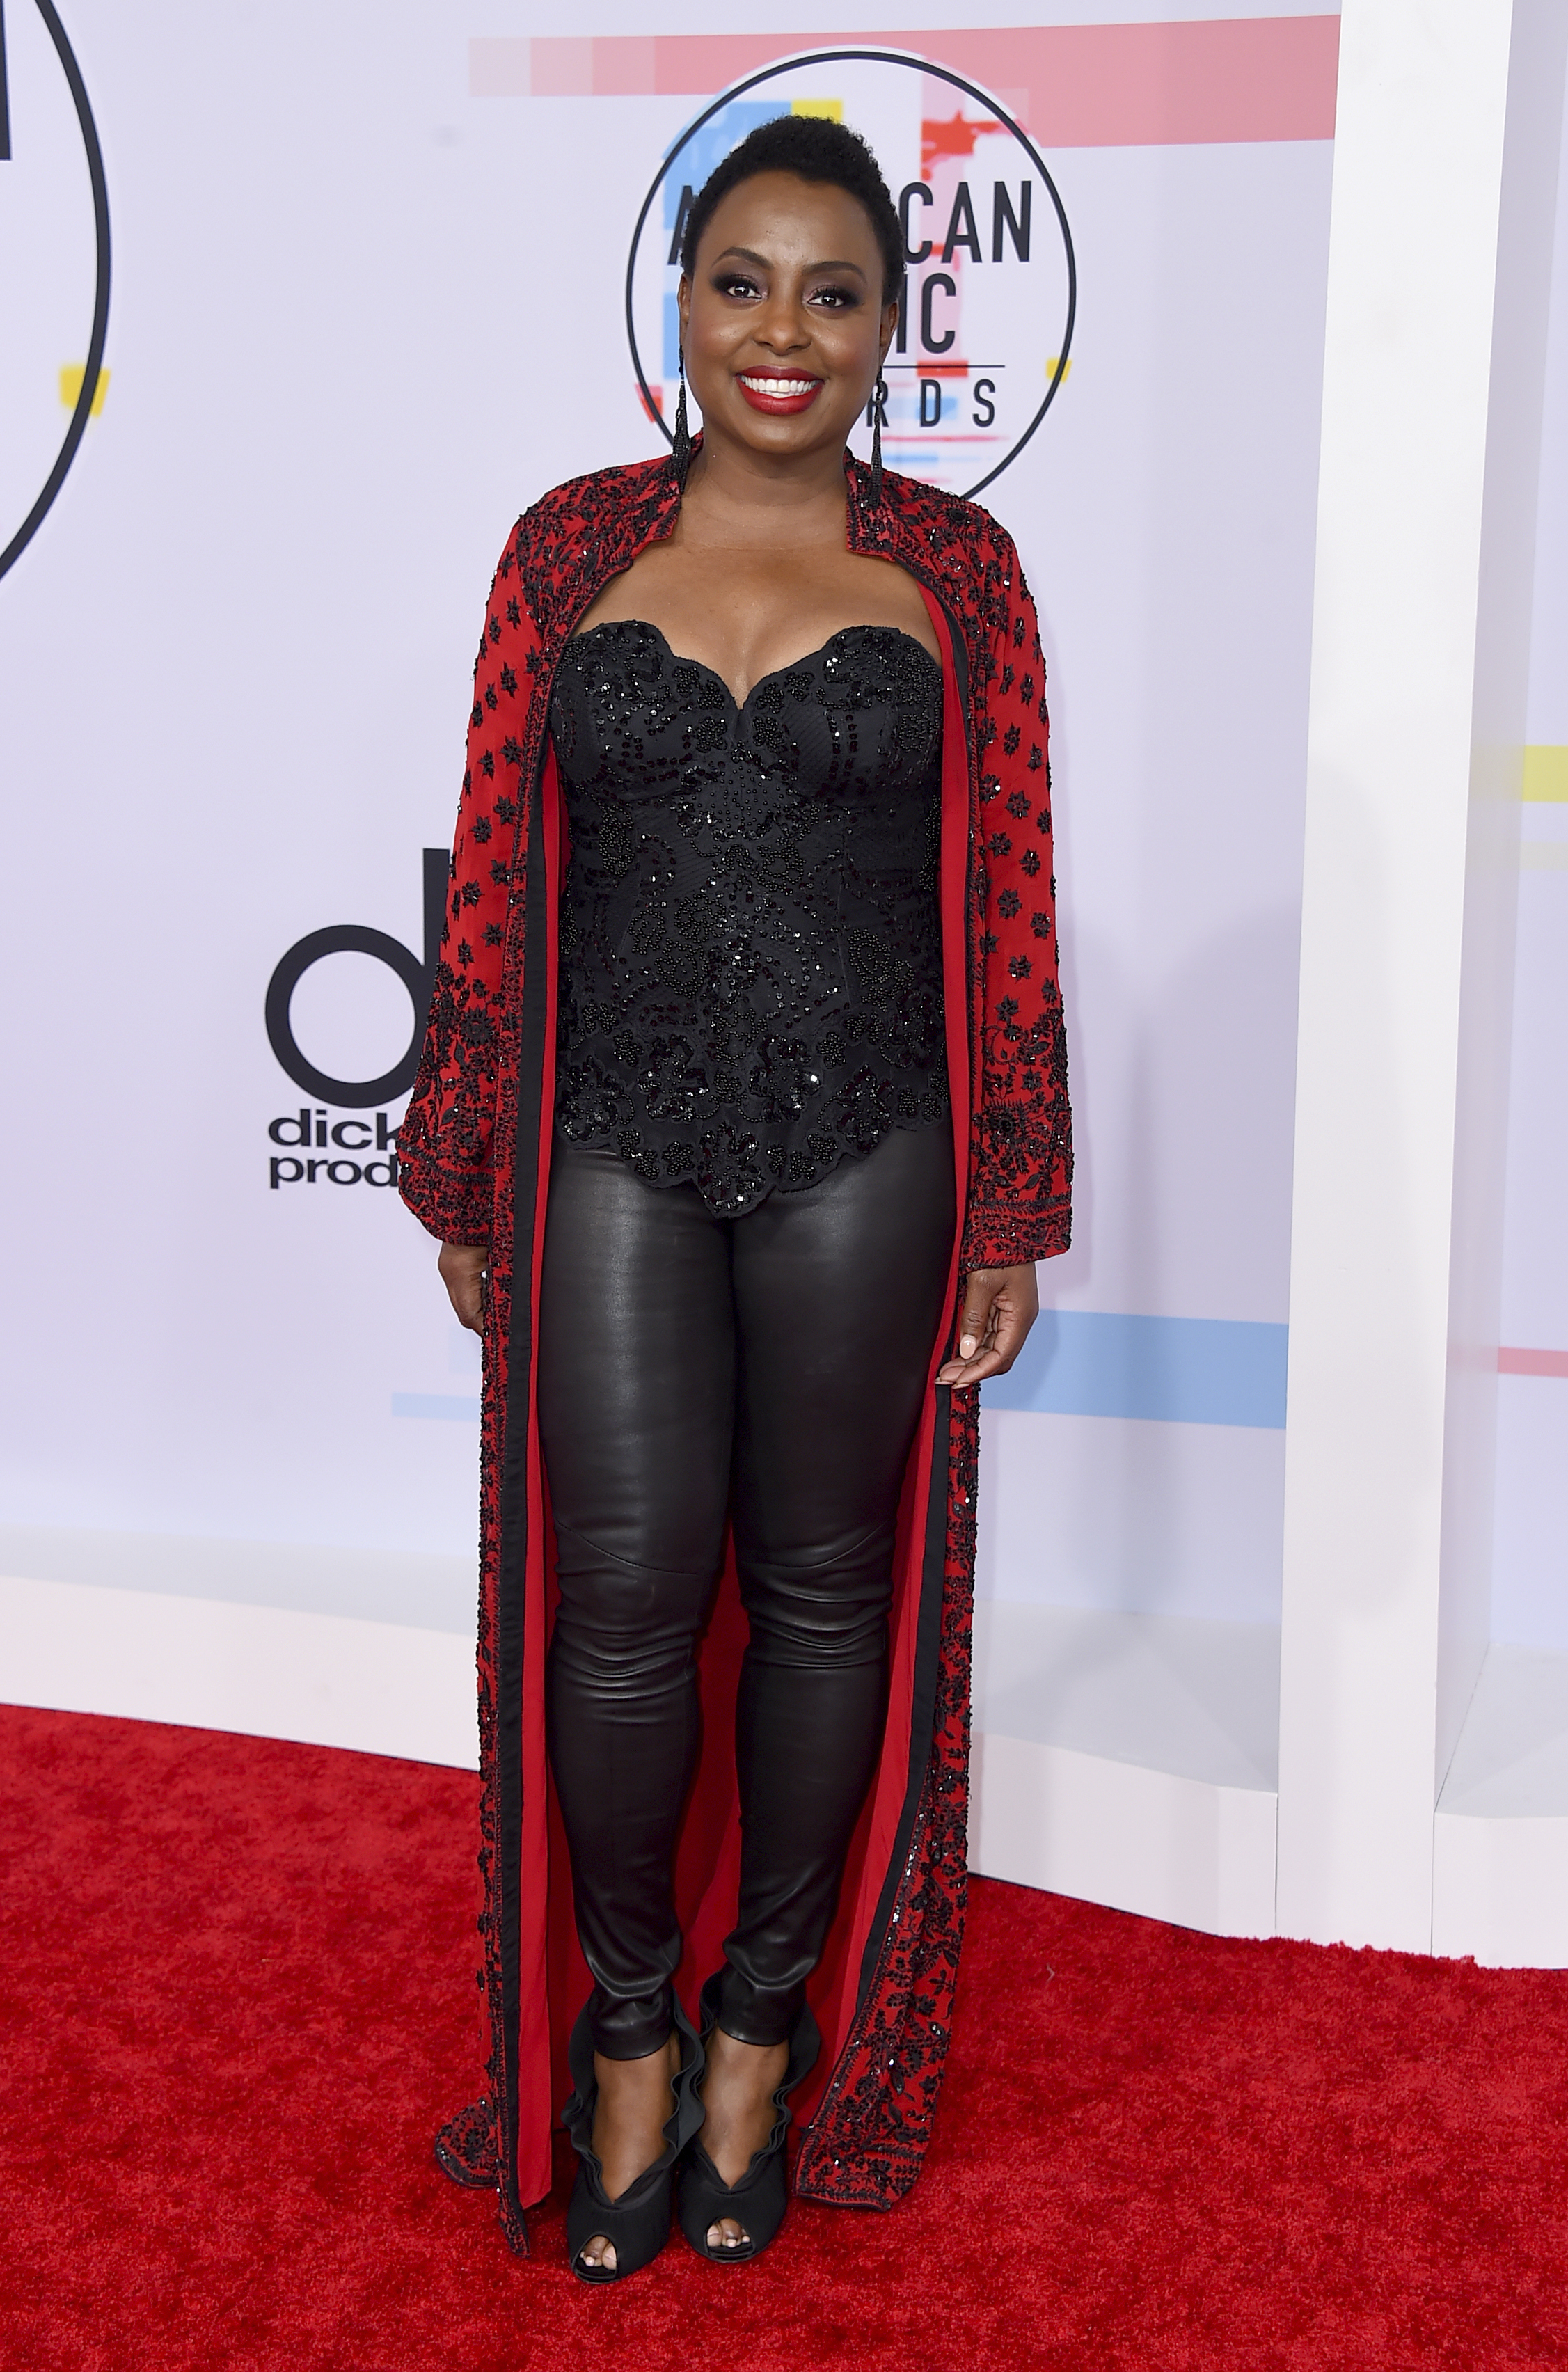 "<div class=""meta image-caption""><div class=""origin-logo origin-image none""><span>none</span></div><span class=""caption-text"">Ledisi arrives at the American Music Awards on Tuesday, Oct. 9, 2018, at the Microsoft Theater in Los Angeles. (Jordan Strauss/Invision/AP)</span></div>"